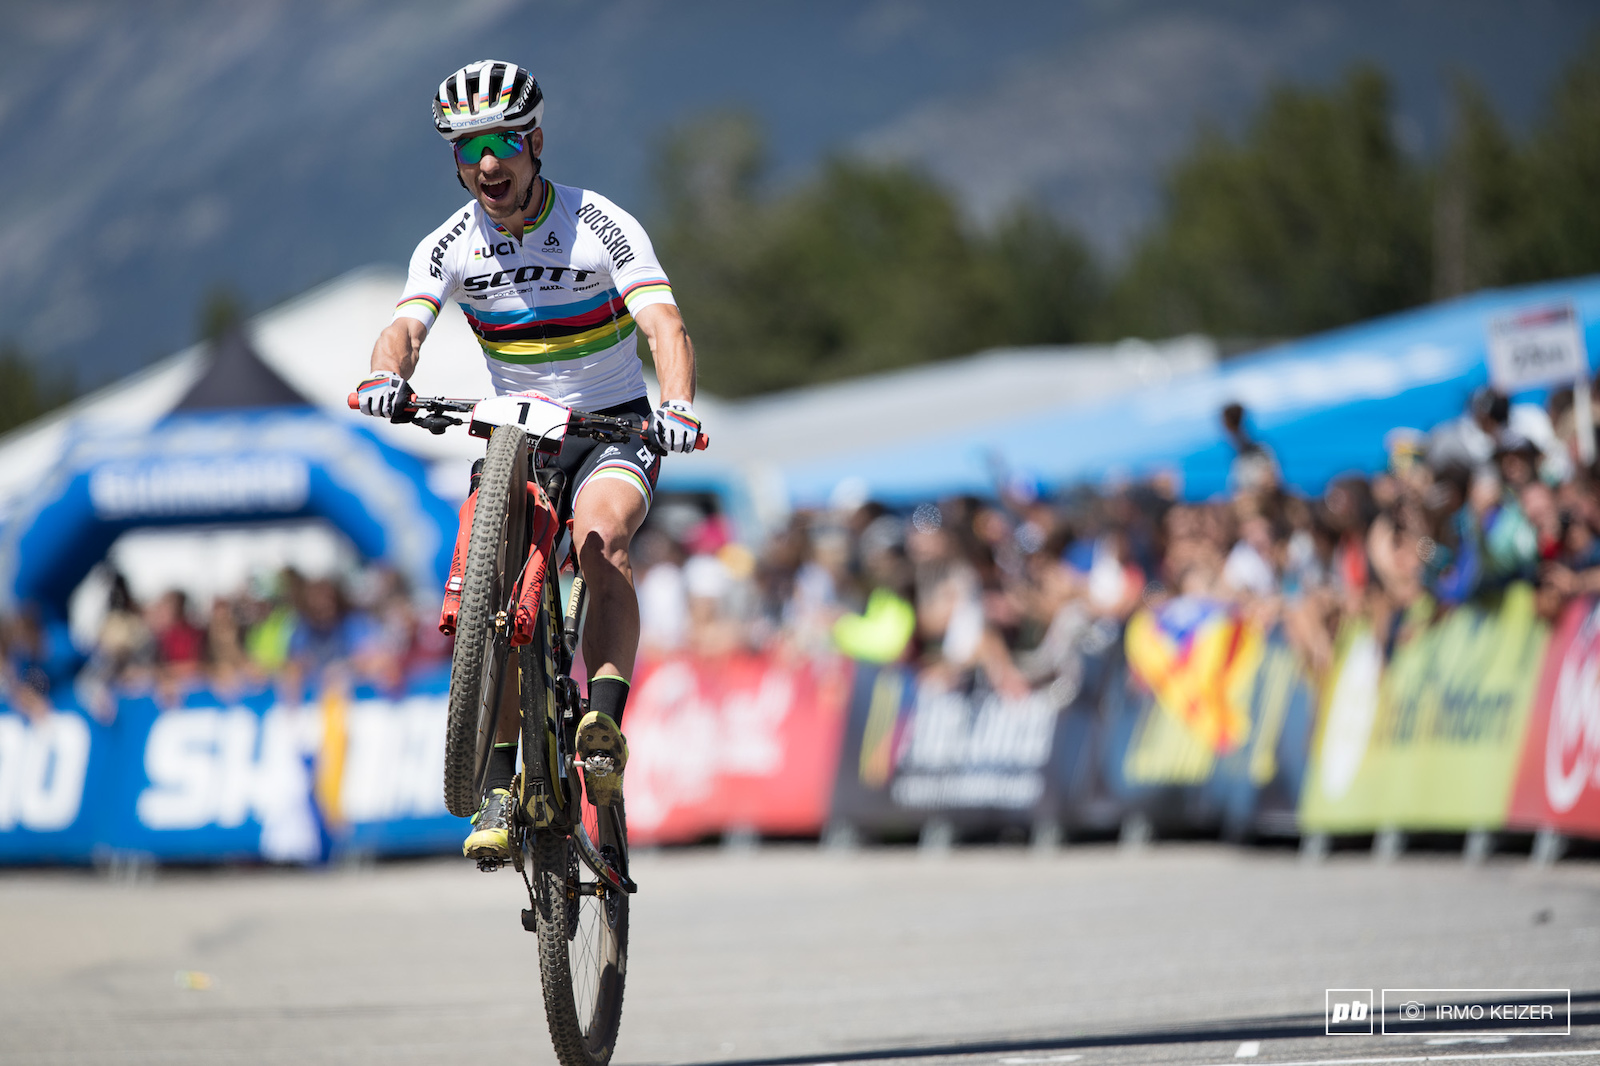 Schurter rode back to the line for a victory hop.